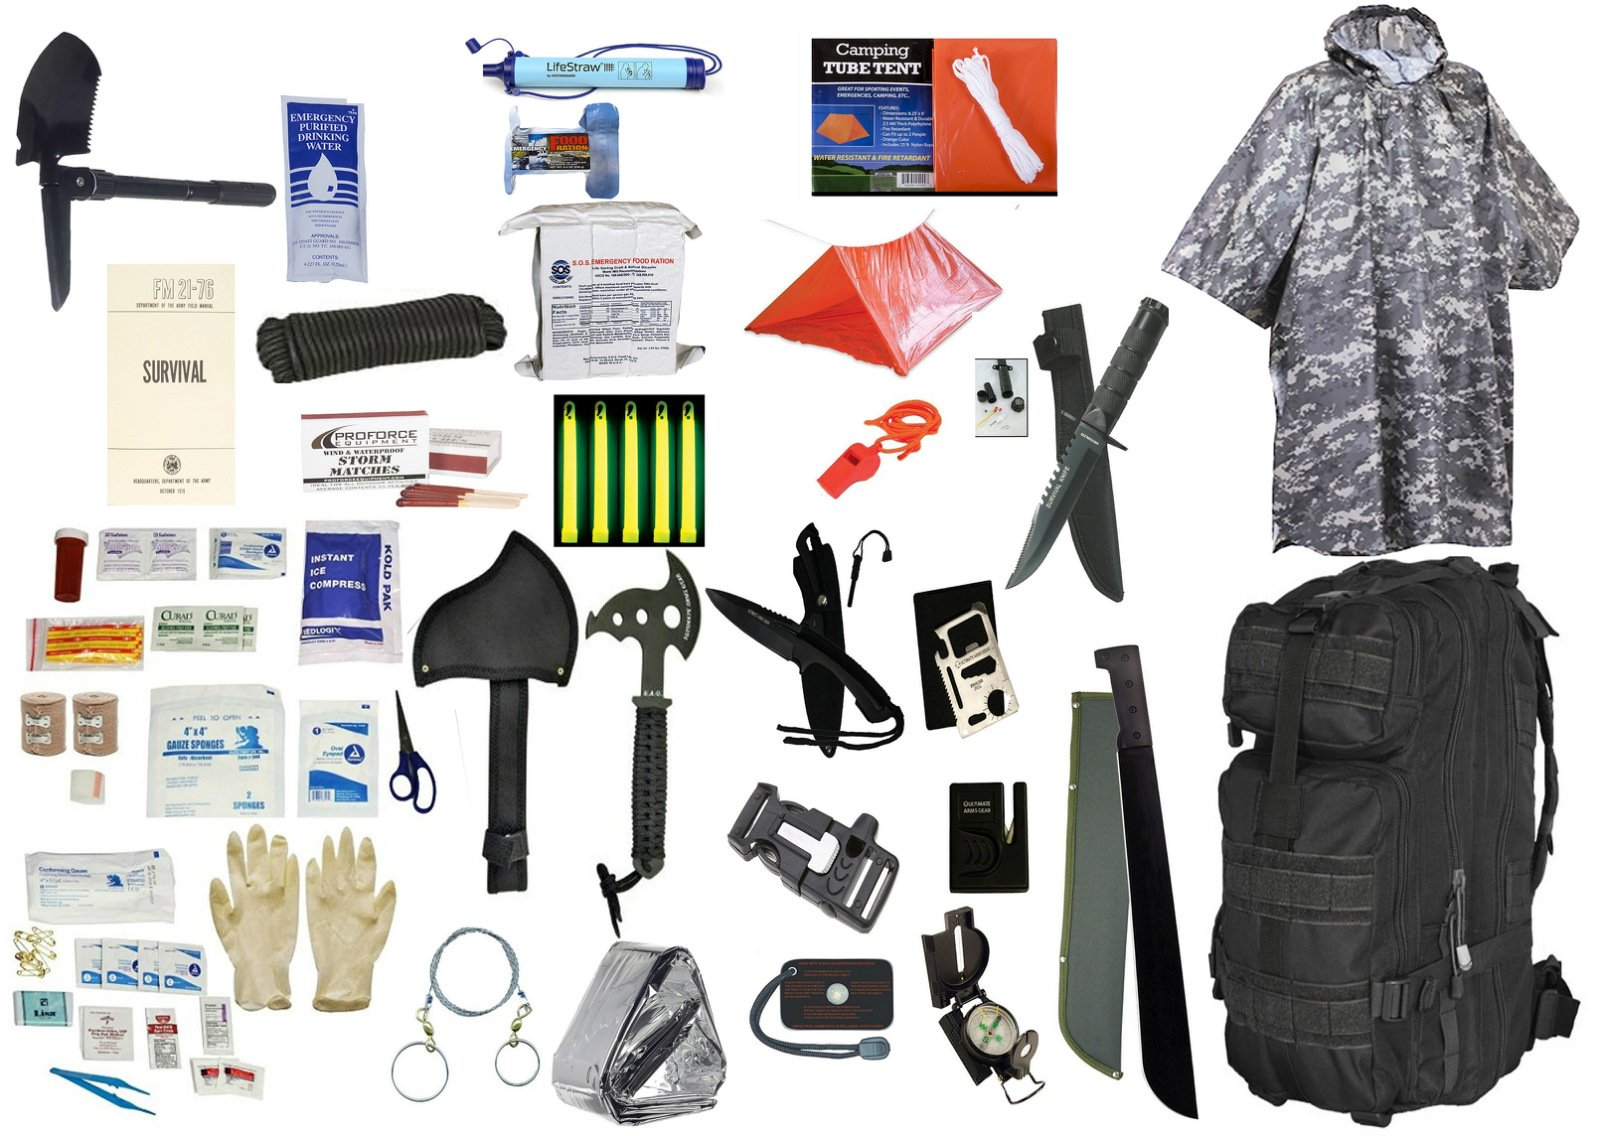 1 Person Supply 1 Day Emergency Bug Out S.O.S. Food Rations, Drinking Water, LifeStraw Personal Water Filter, First Aid Kit, Tent, Blanket, Backpack, ACU Poncho + Essential 21 Piece Survival Gear Set